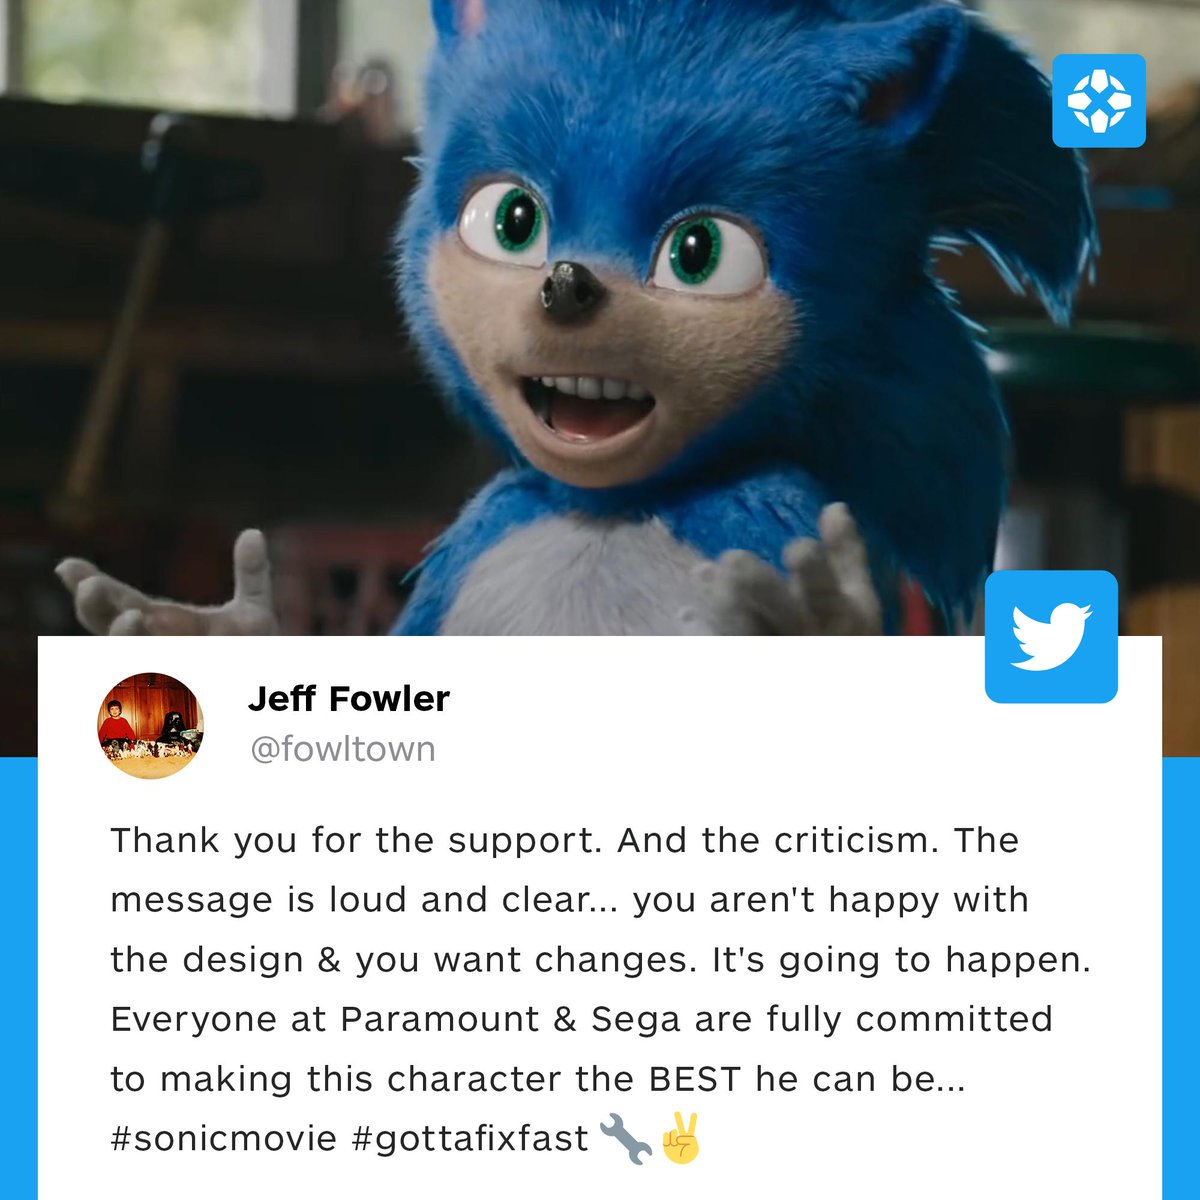 Ign On Twitter The Director Of The Sonic The Hedgehog Movie Has Stated That The Team Will Fix The Character S Look Before The Final Release Of The Film Https T Co Hyyxbrrmen